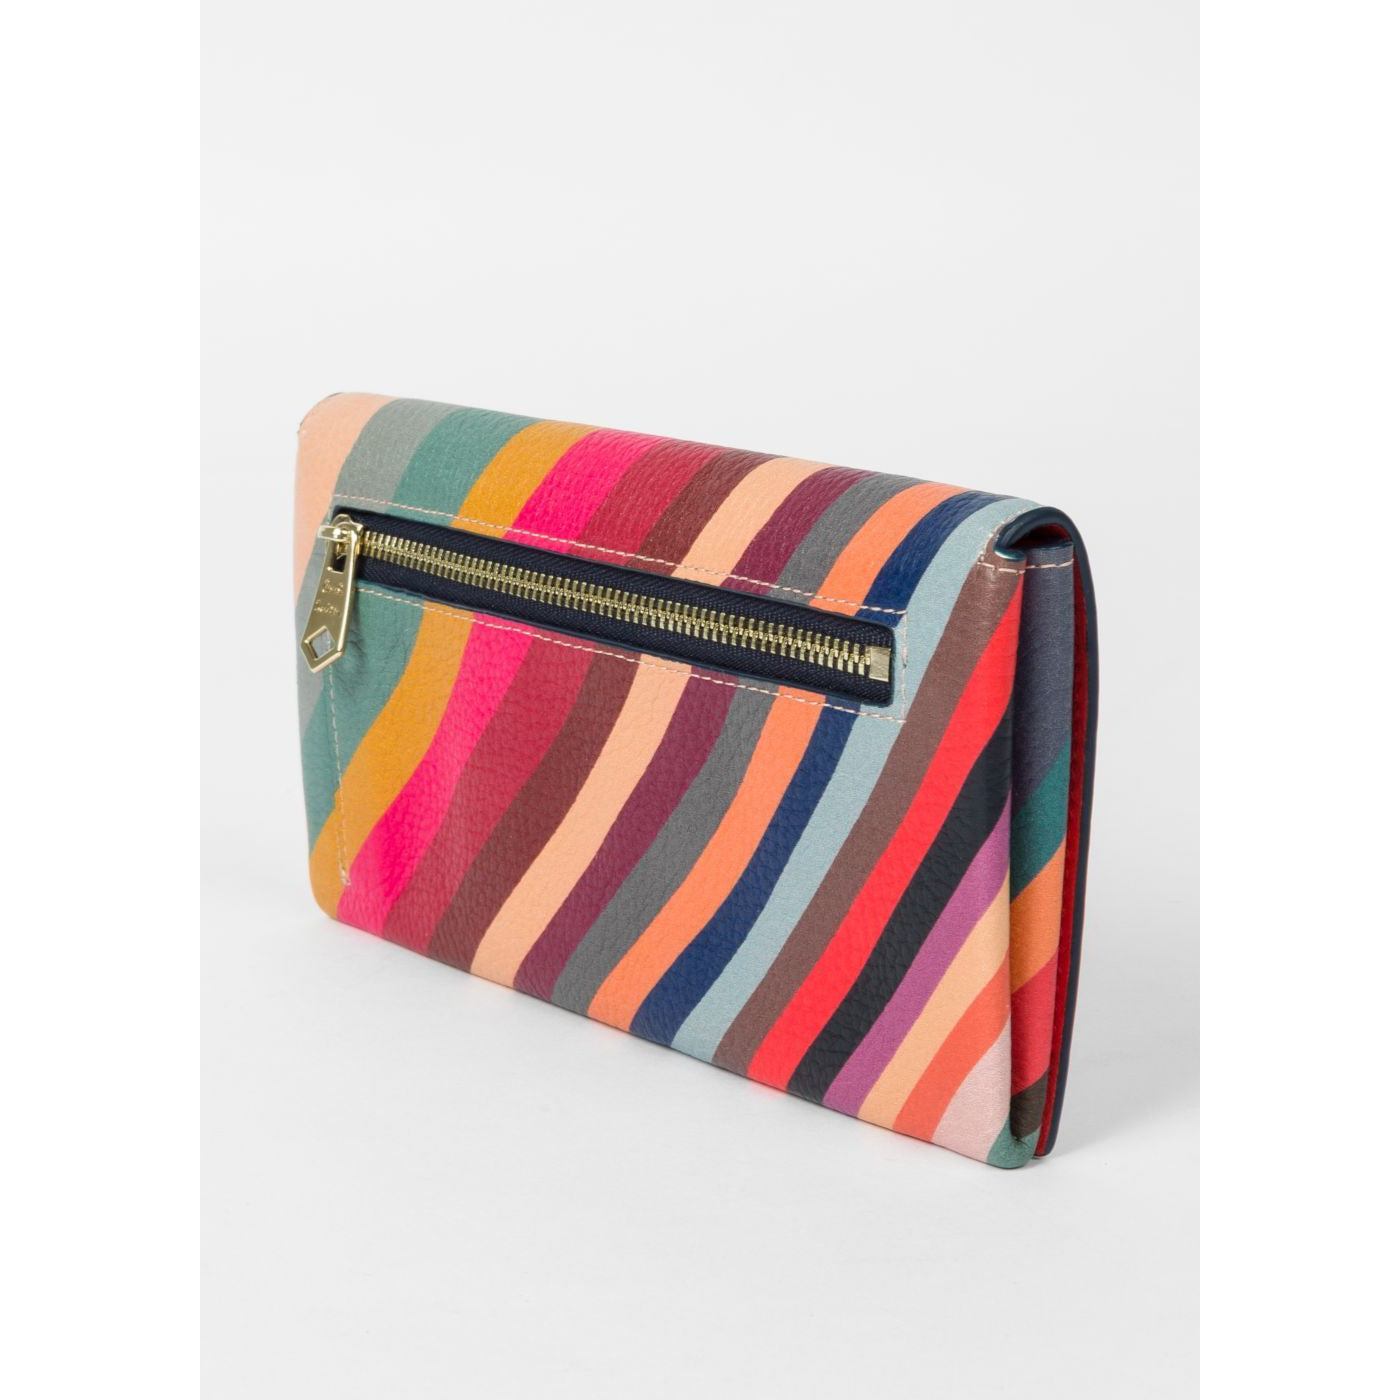 PS PAUL SMITH TRI-FOLD 'SWIRL' PRINT LEATHER PURSE